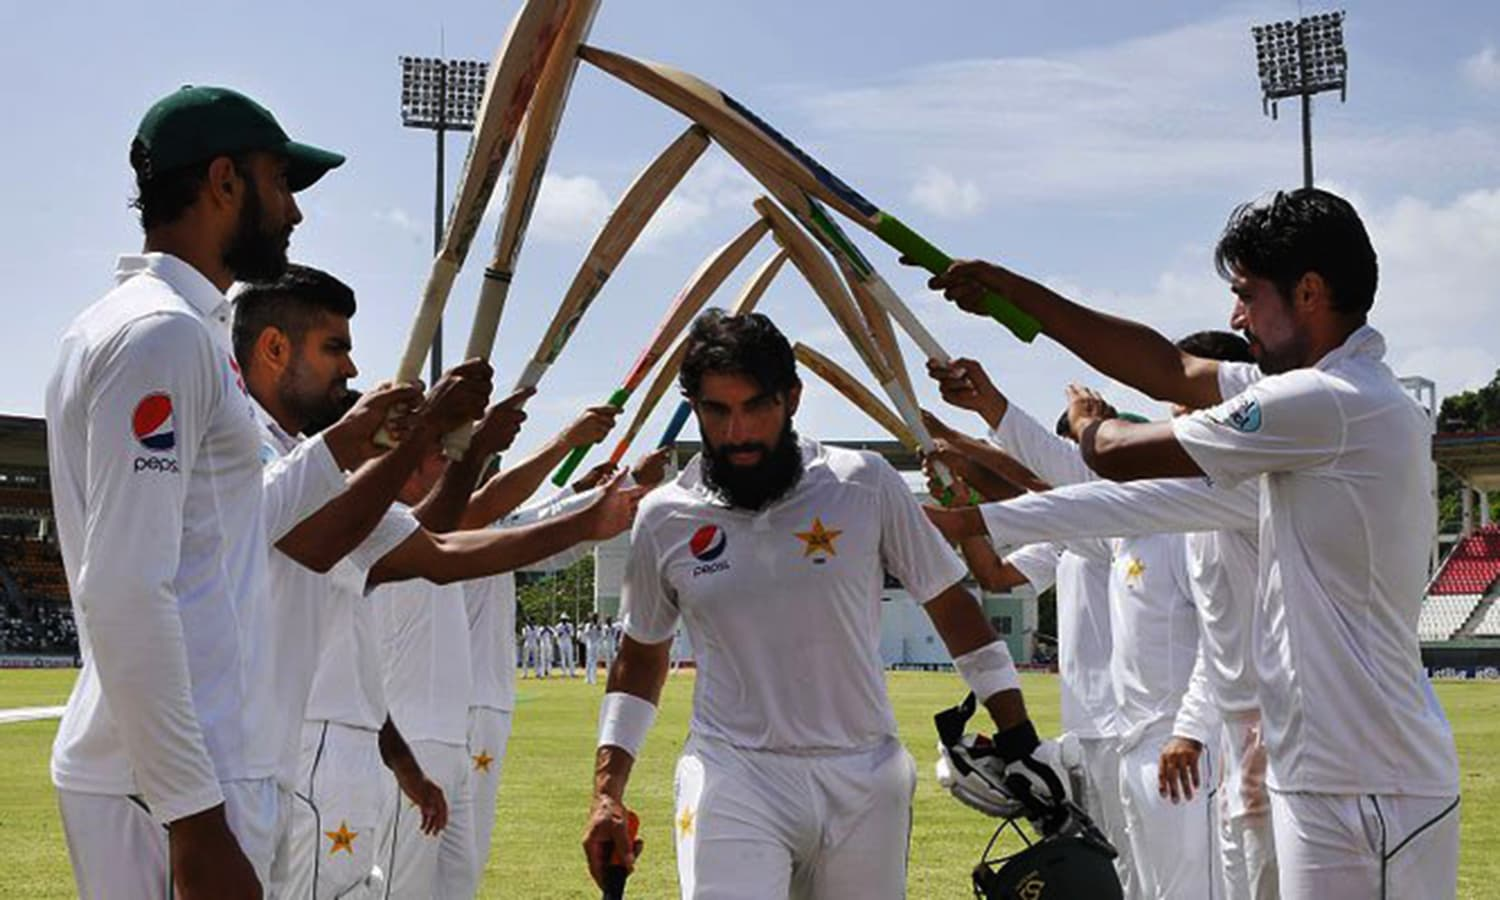 Misbah walks through a 'guard of honour' as he exists the field after his final international Test inning as a batsman.  — ICC's Twitter